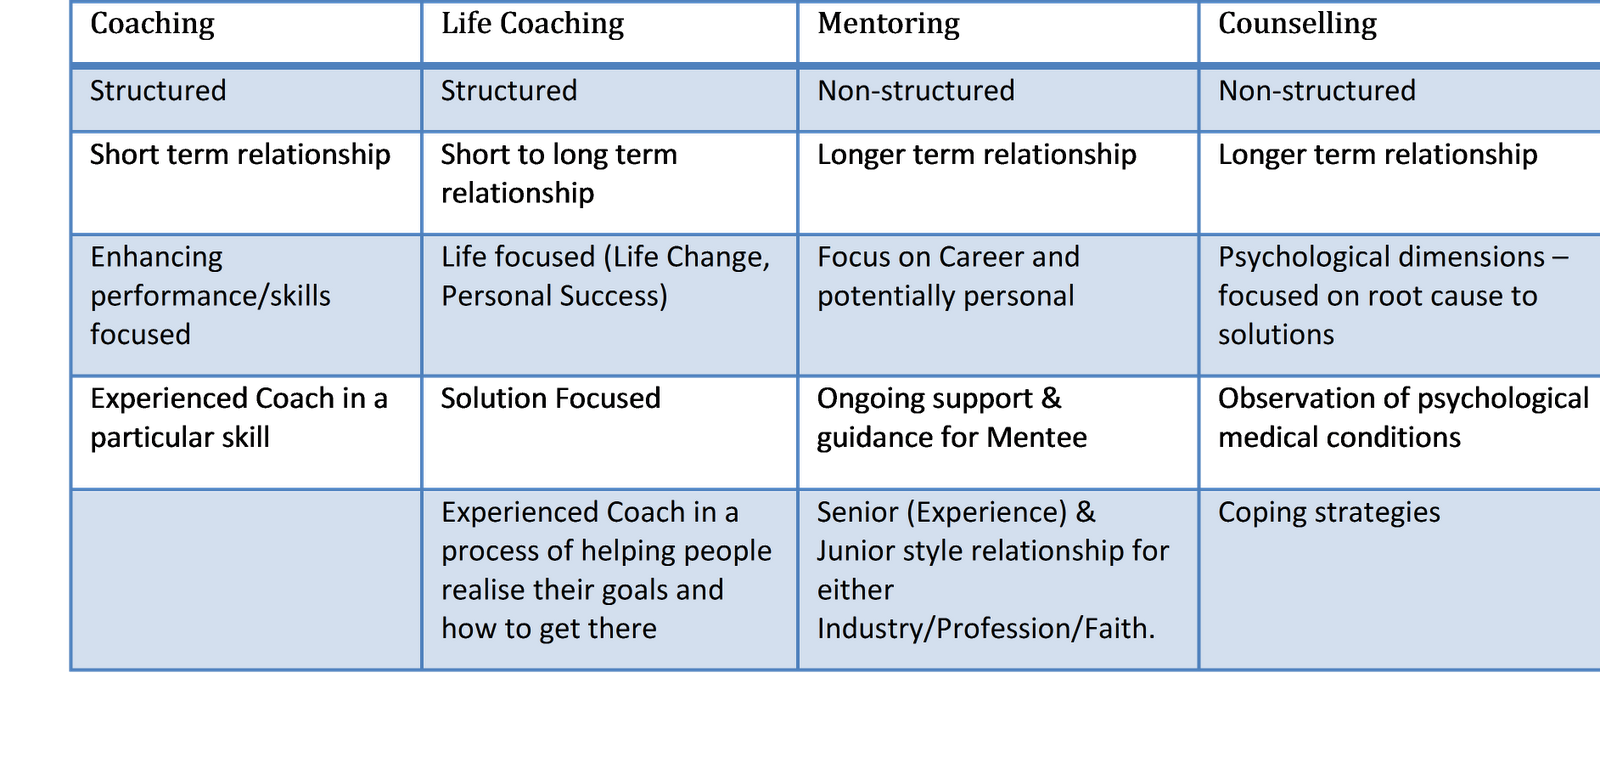 analysis of mentoring coaching and counselling Training programmes and 450 coaching and mentoring cases at 7 swedish  universities  in a longitudinal qualitative analysis, this article discusses two  major concepts in  counselling: a multidimensional approach, review of  business, vol.